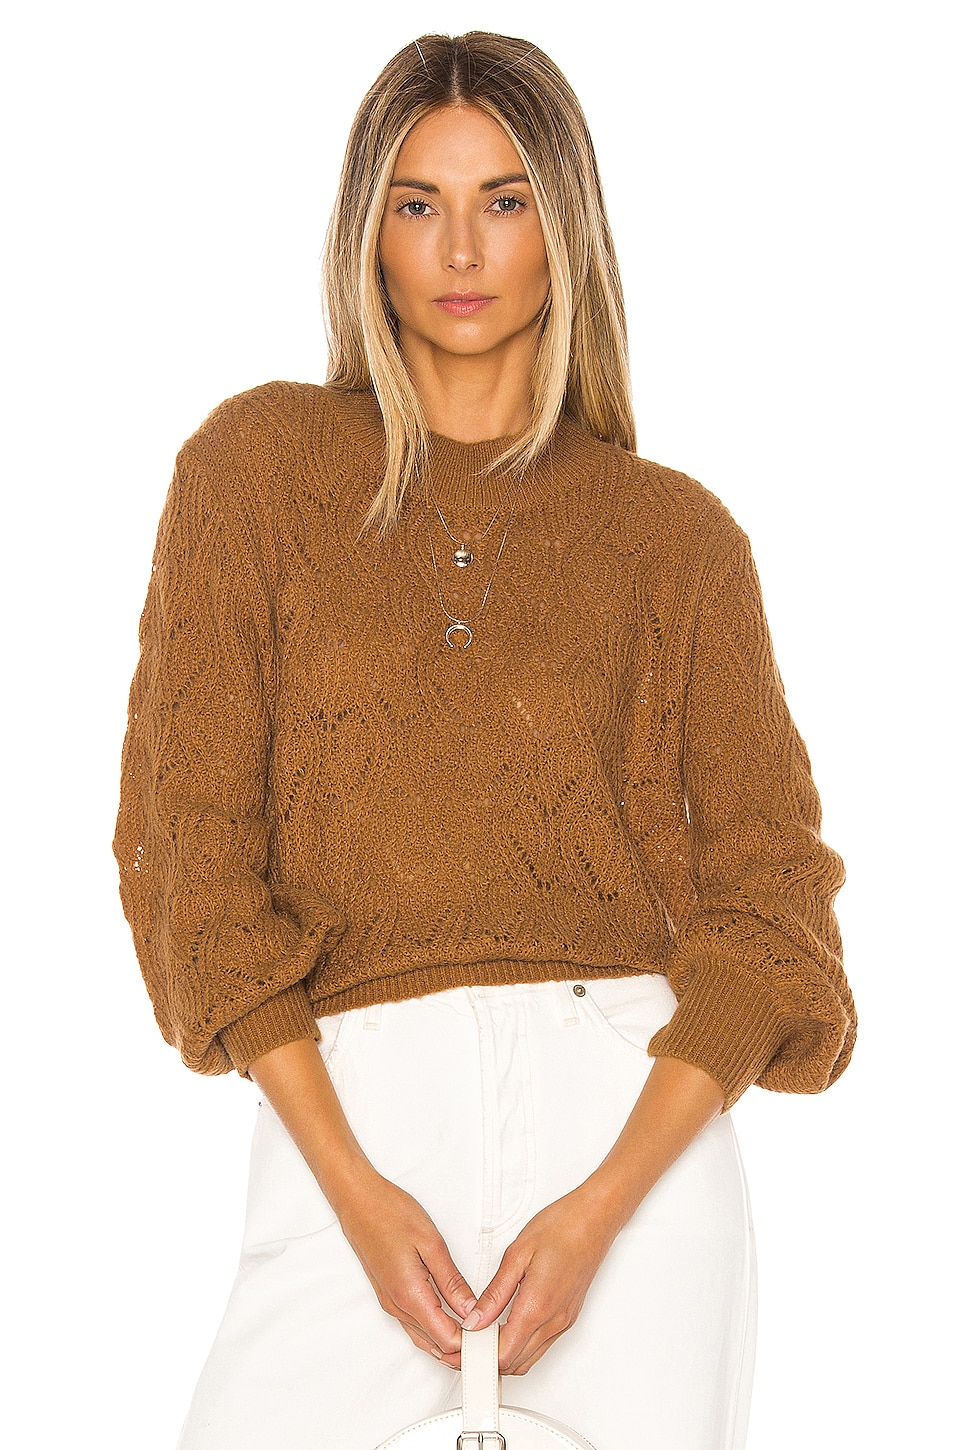 HEARTLOOM Millie Pullover in Spice